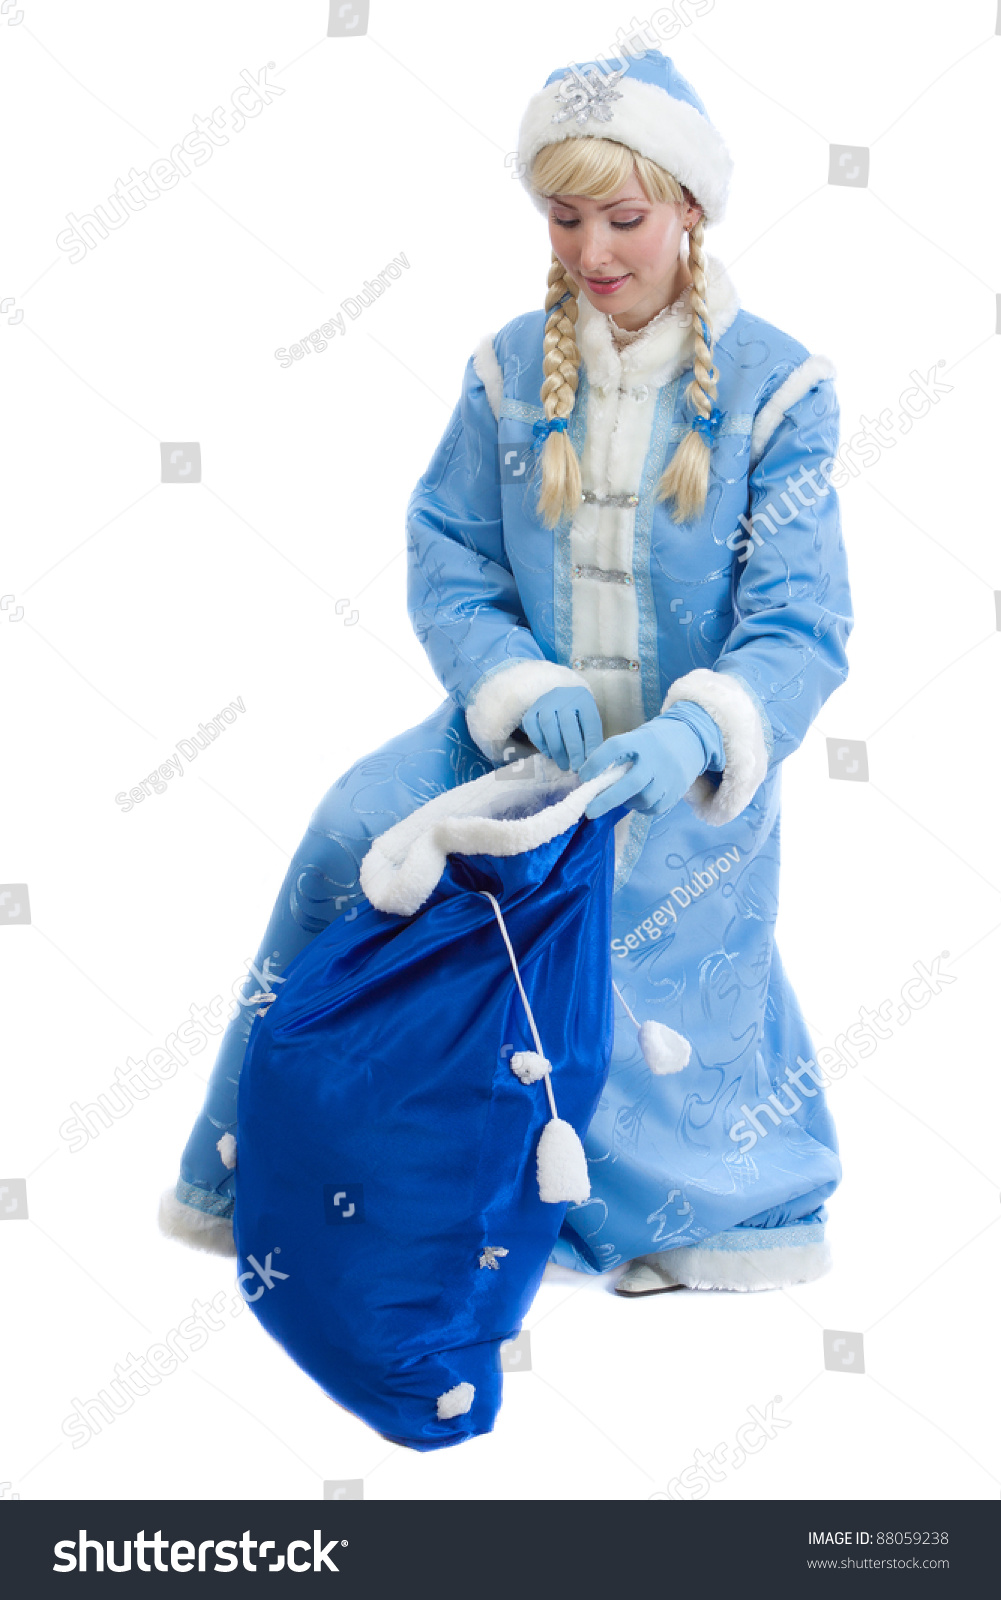 Smiling Girl Dressed In Traditional Russian Christmas Costume Of Snegurochka Snow Maiden Opens Big